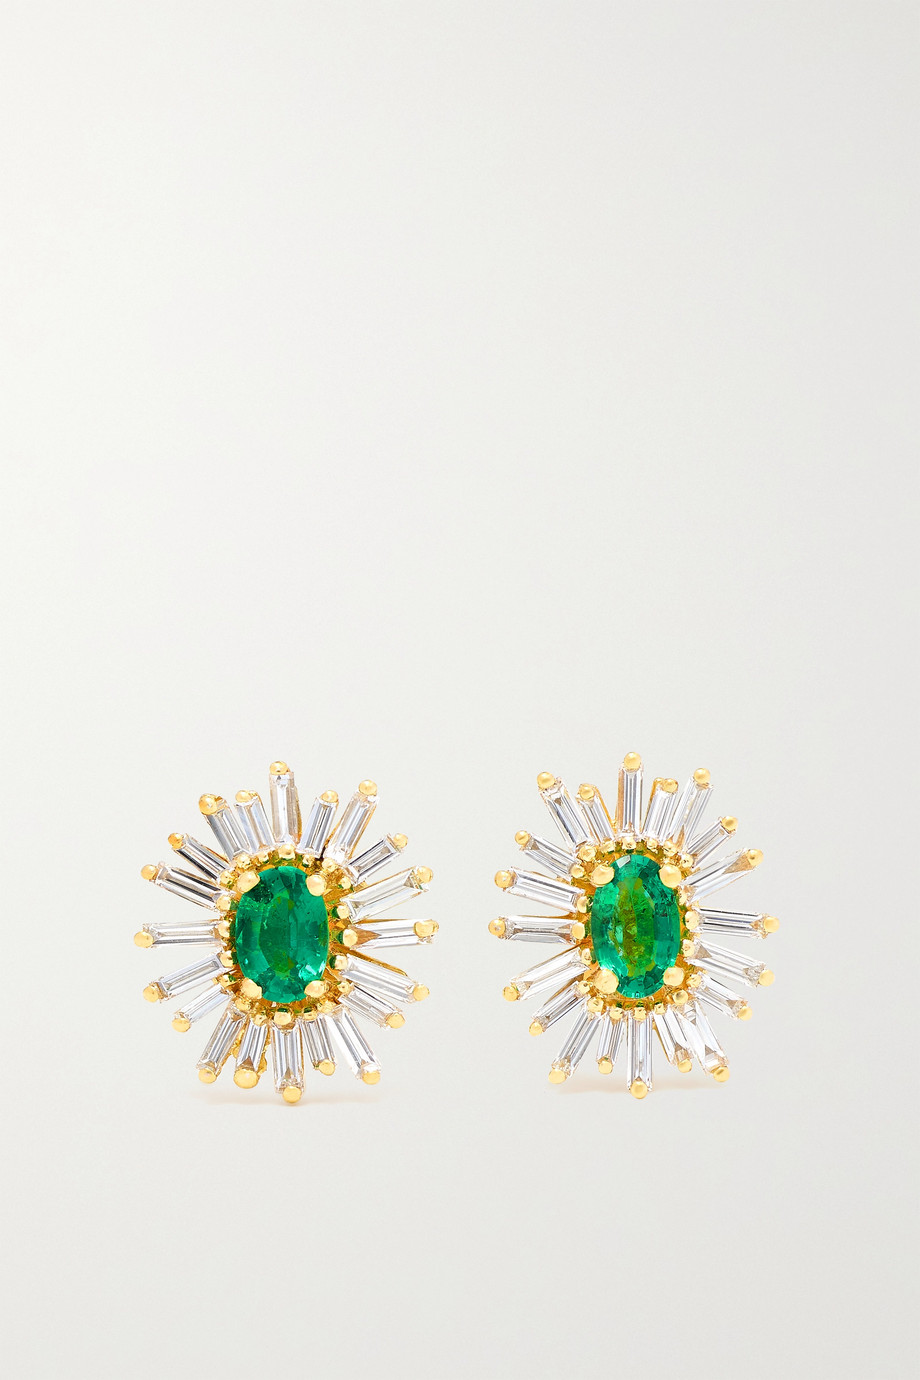 SUZANNE KALAN 18-karat gold, diamond and emerald earrings